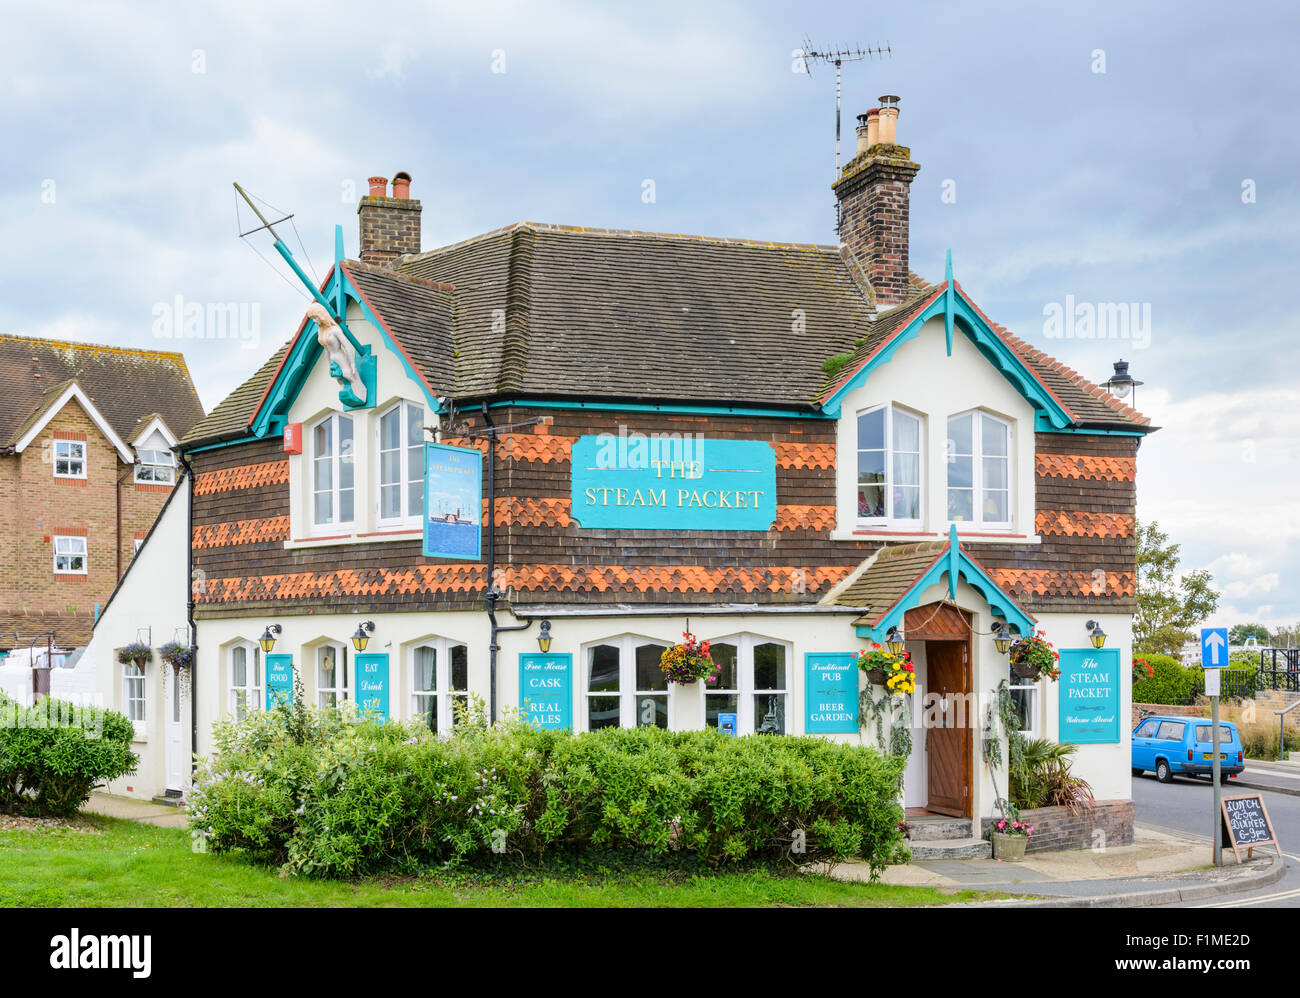 The Steam Packet Inn (refurbished) in Littlehampton, West Sussex, England, UK. - Stock Image